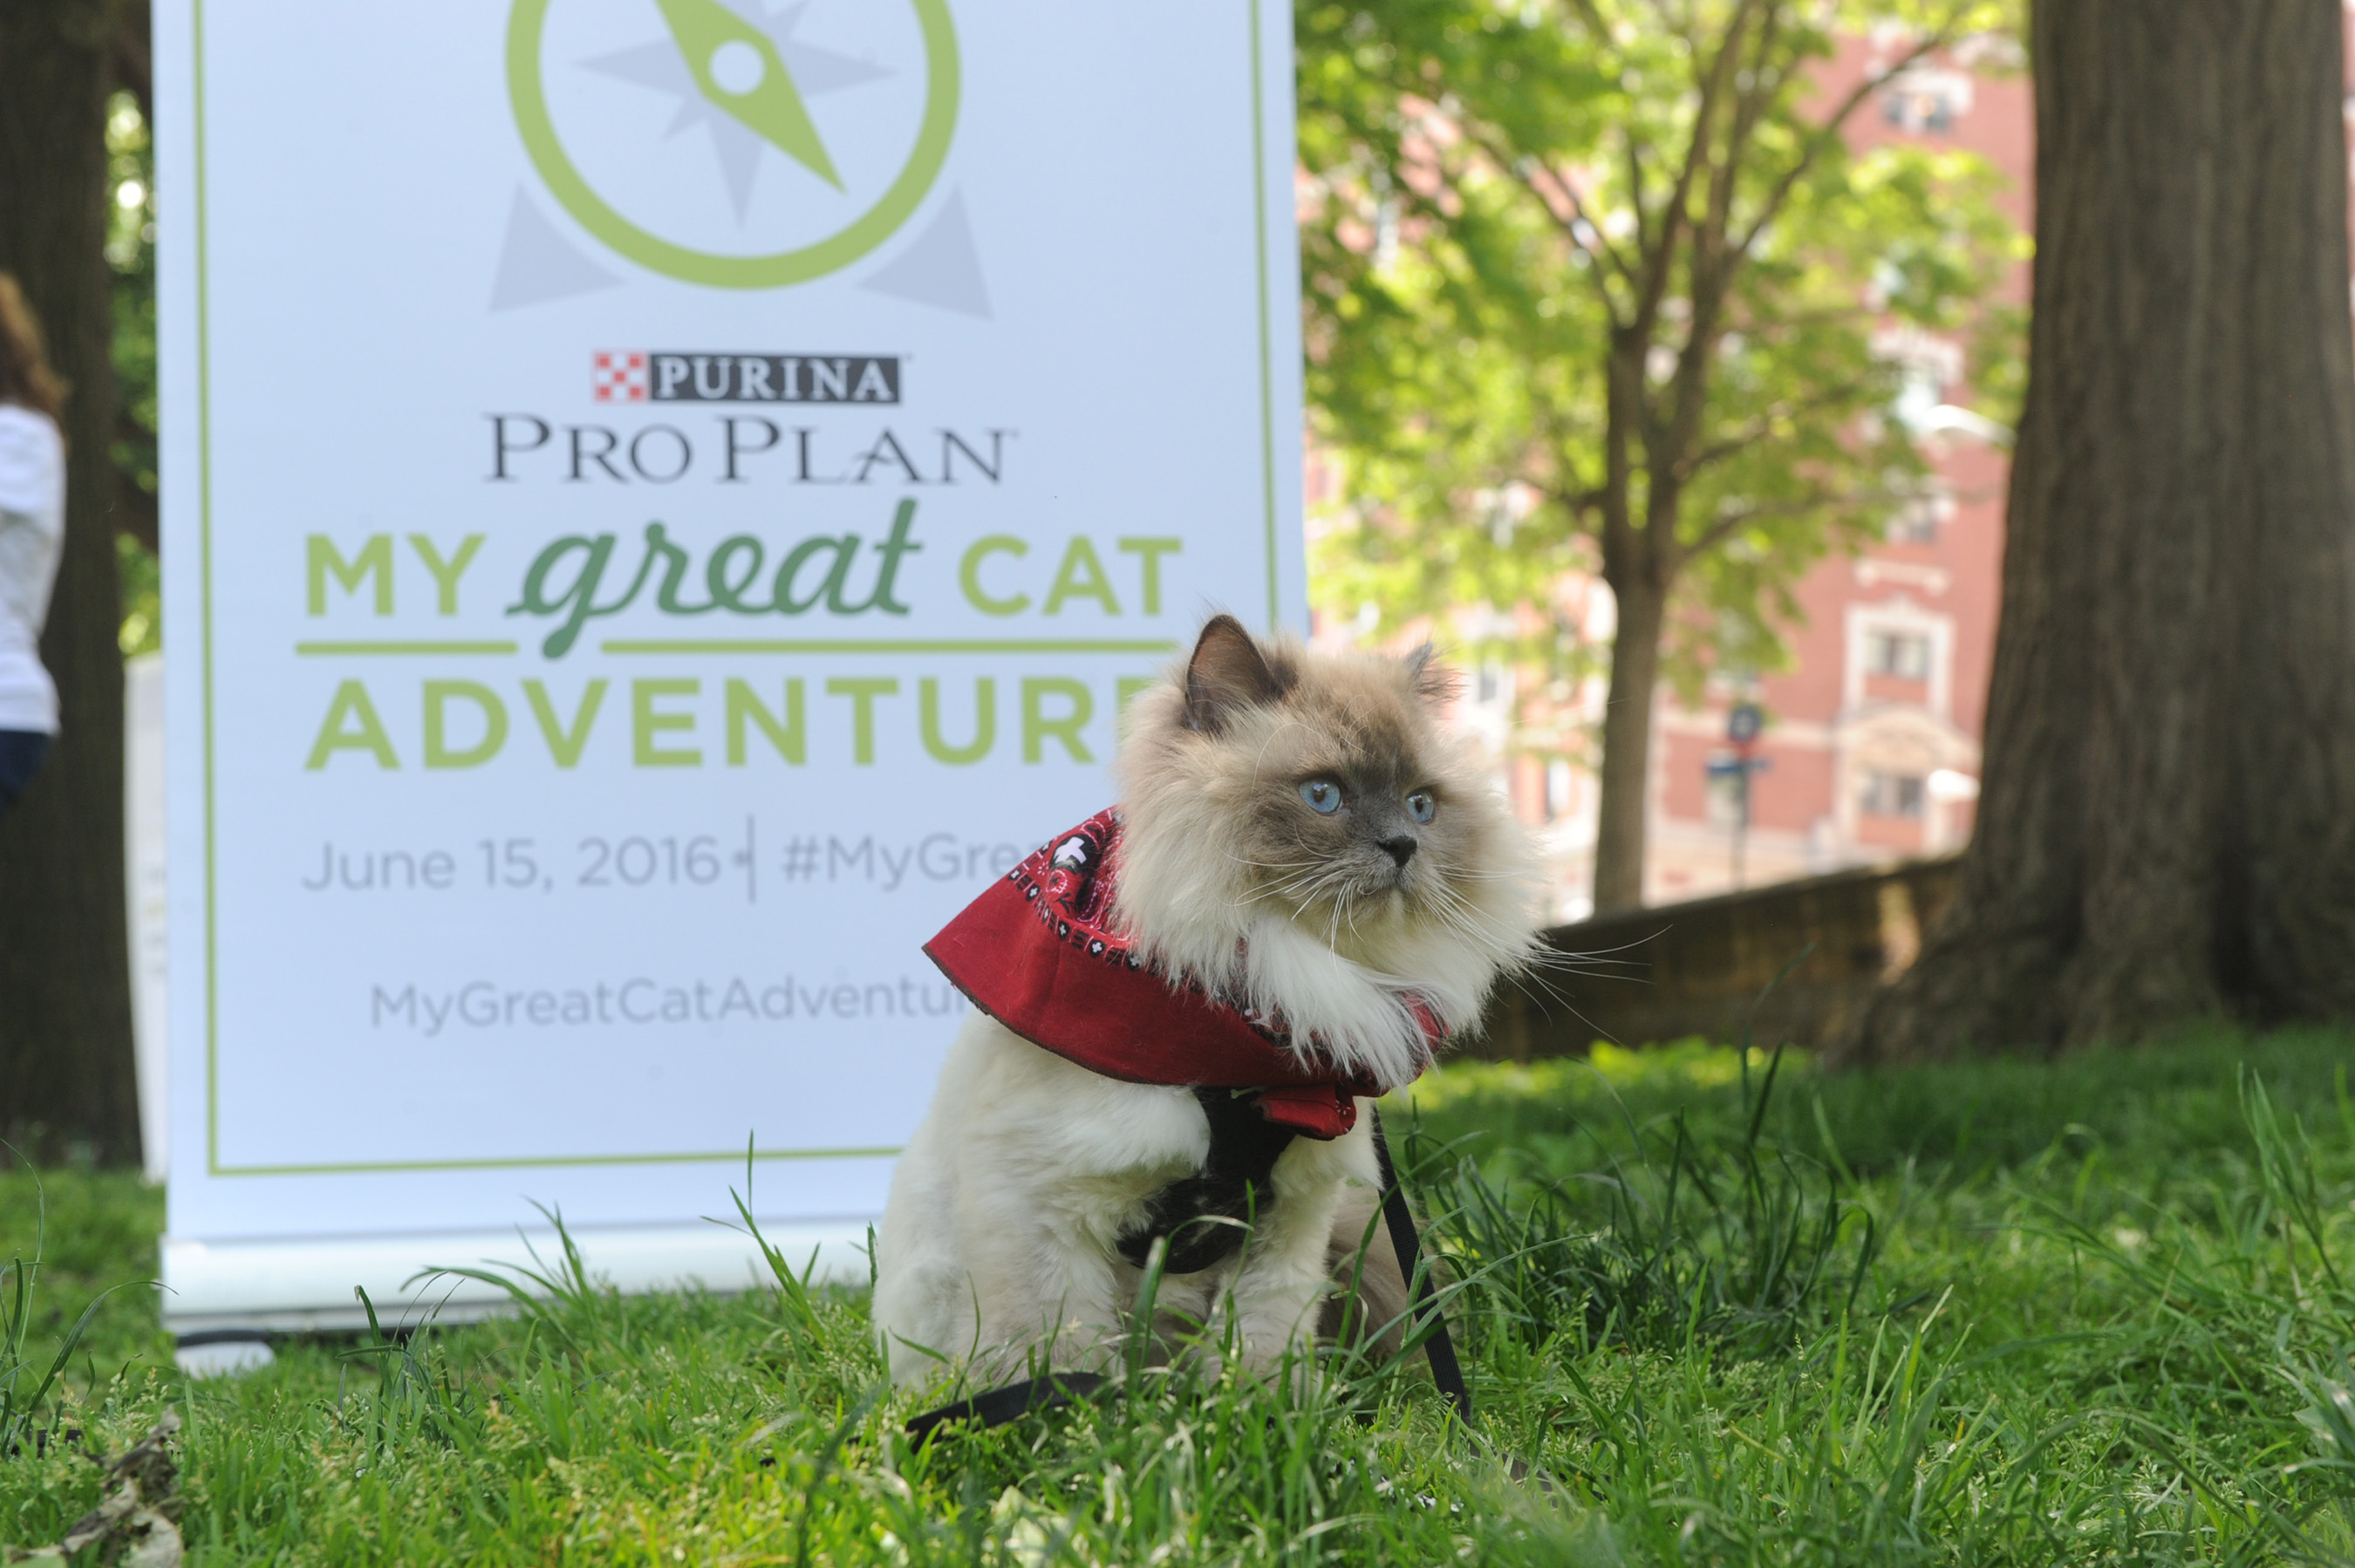 """Purina Pro Plan and Adventure Cats proclaim June 15 as National """"Take Your Cat On An Adventure"""" Day to inspire cat owners to be more adventurous. (Diane Bondareff/AP Images for Purina Pro Plan)"""